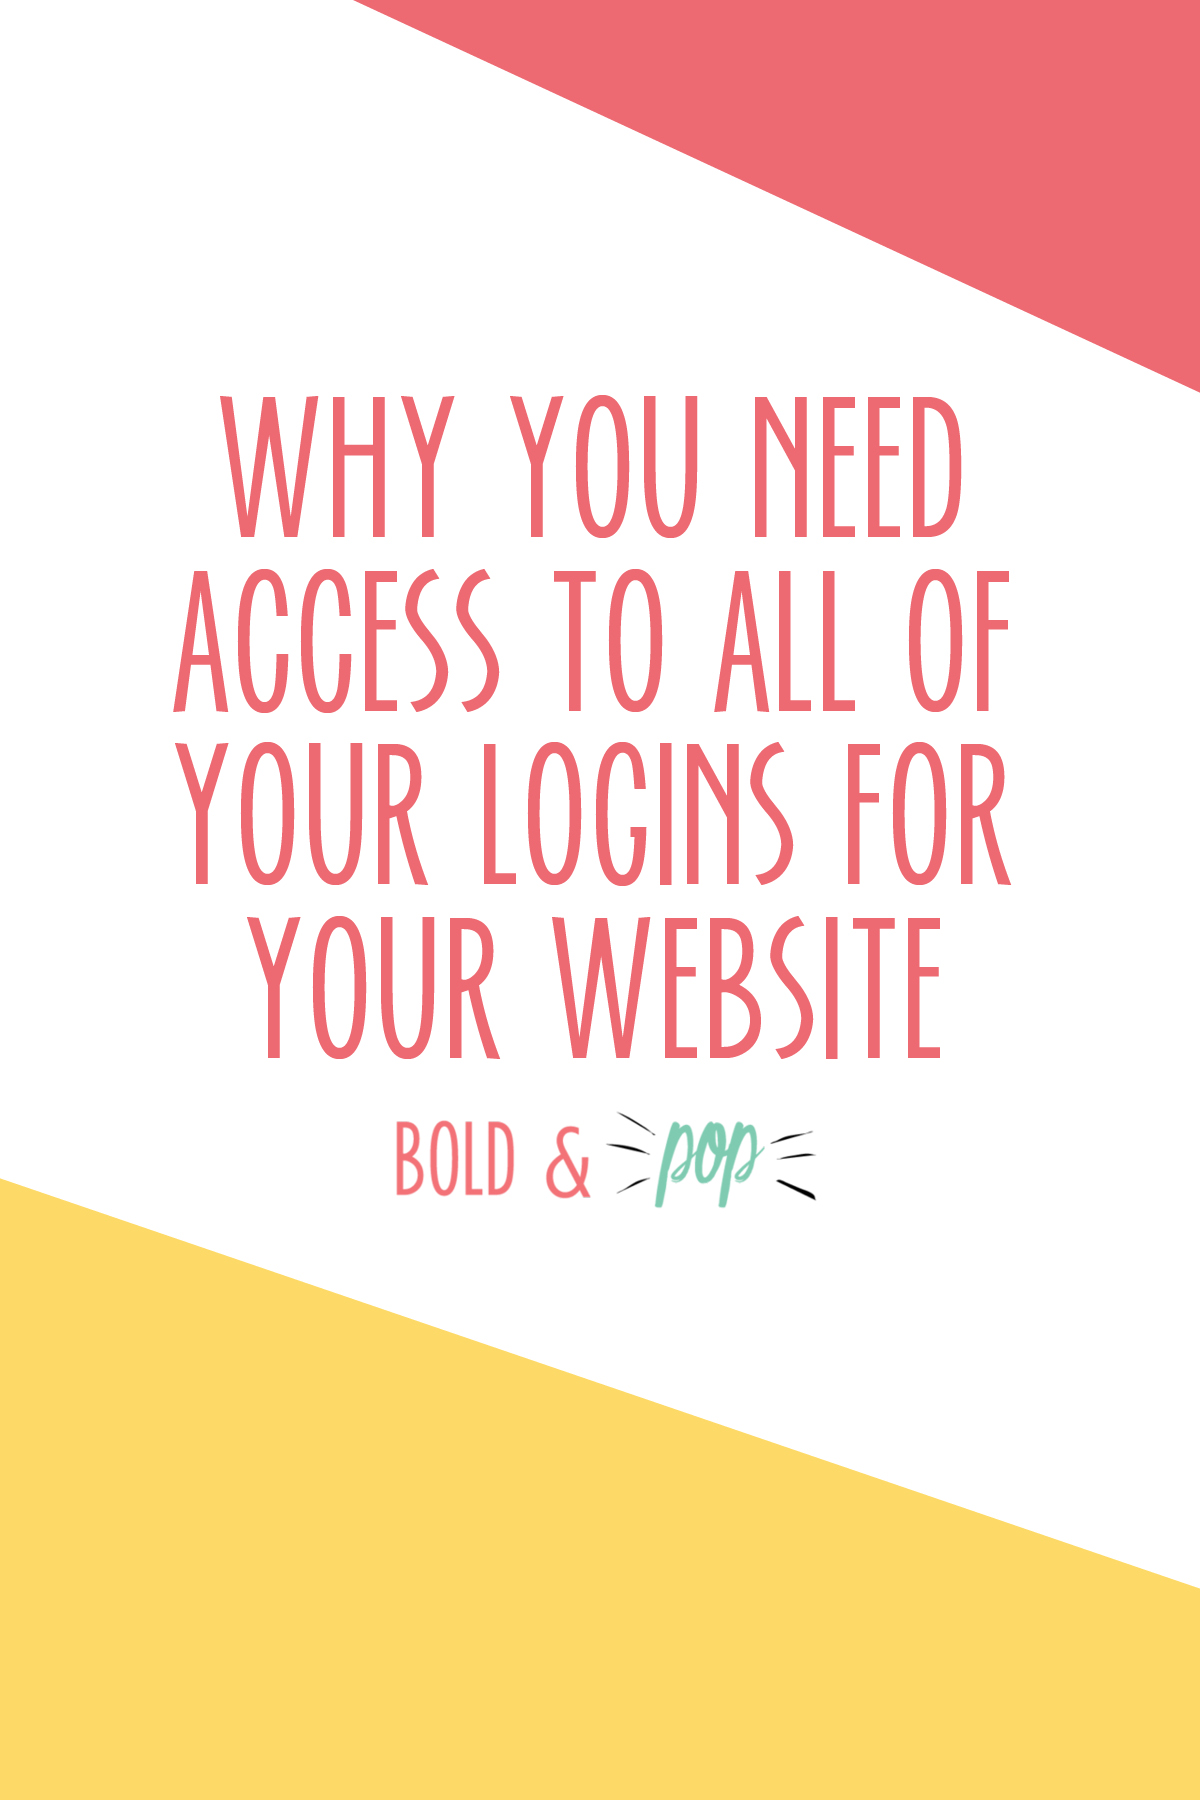 Bold & Pop : Why You Need Access to all of your Logins for Your Website